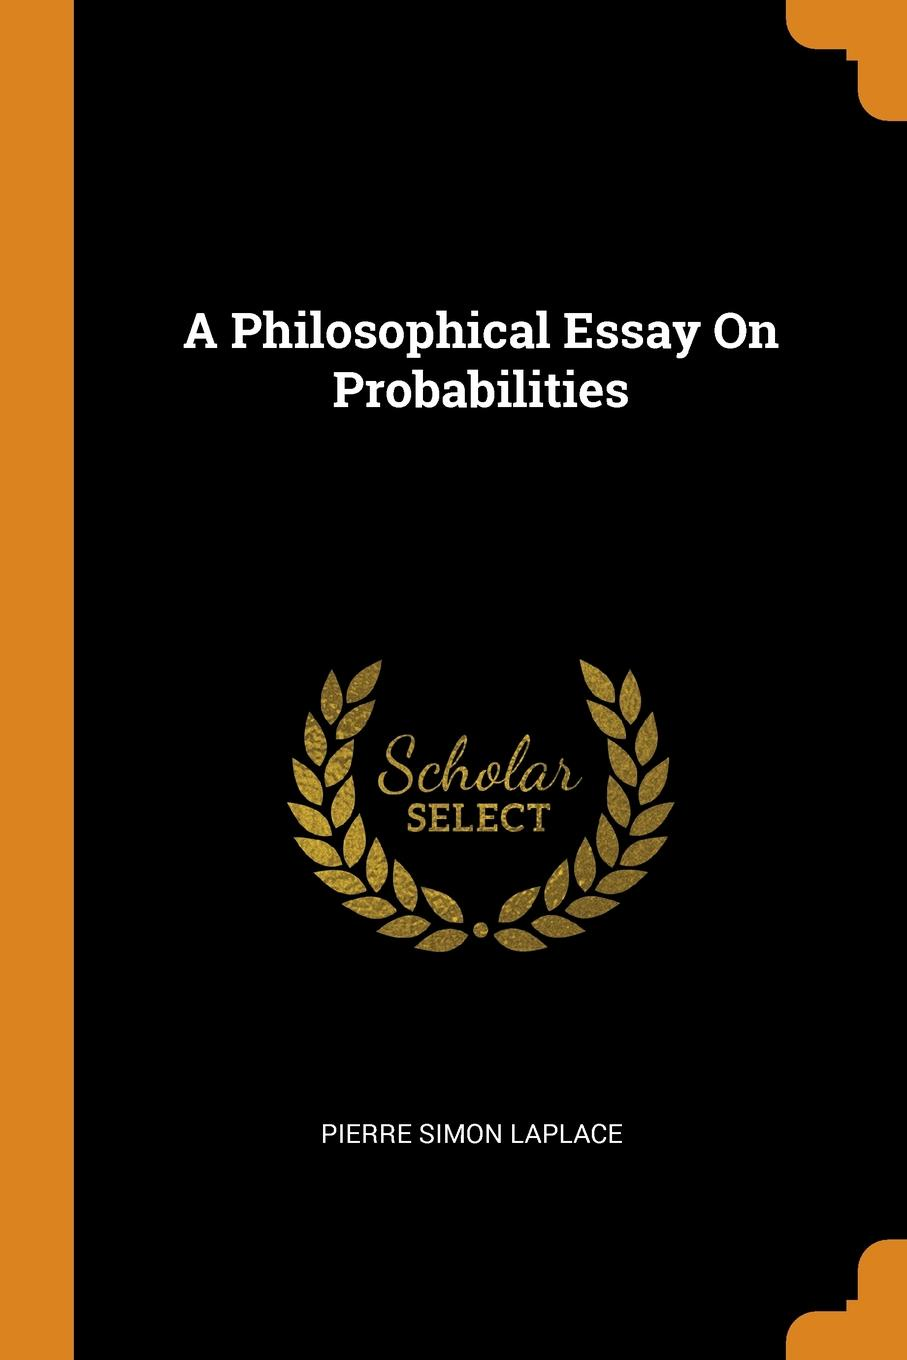 Pierre Simon Laplace A Philosophical Essay On Probabilities gabriel moran america in the united states and the united states in america a philosophical essay